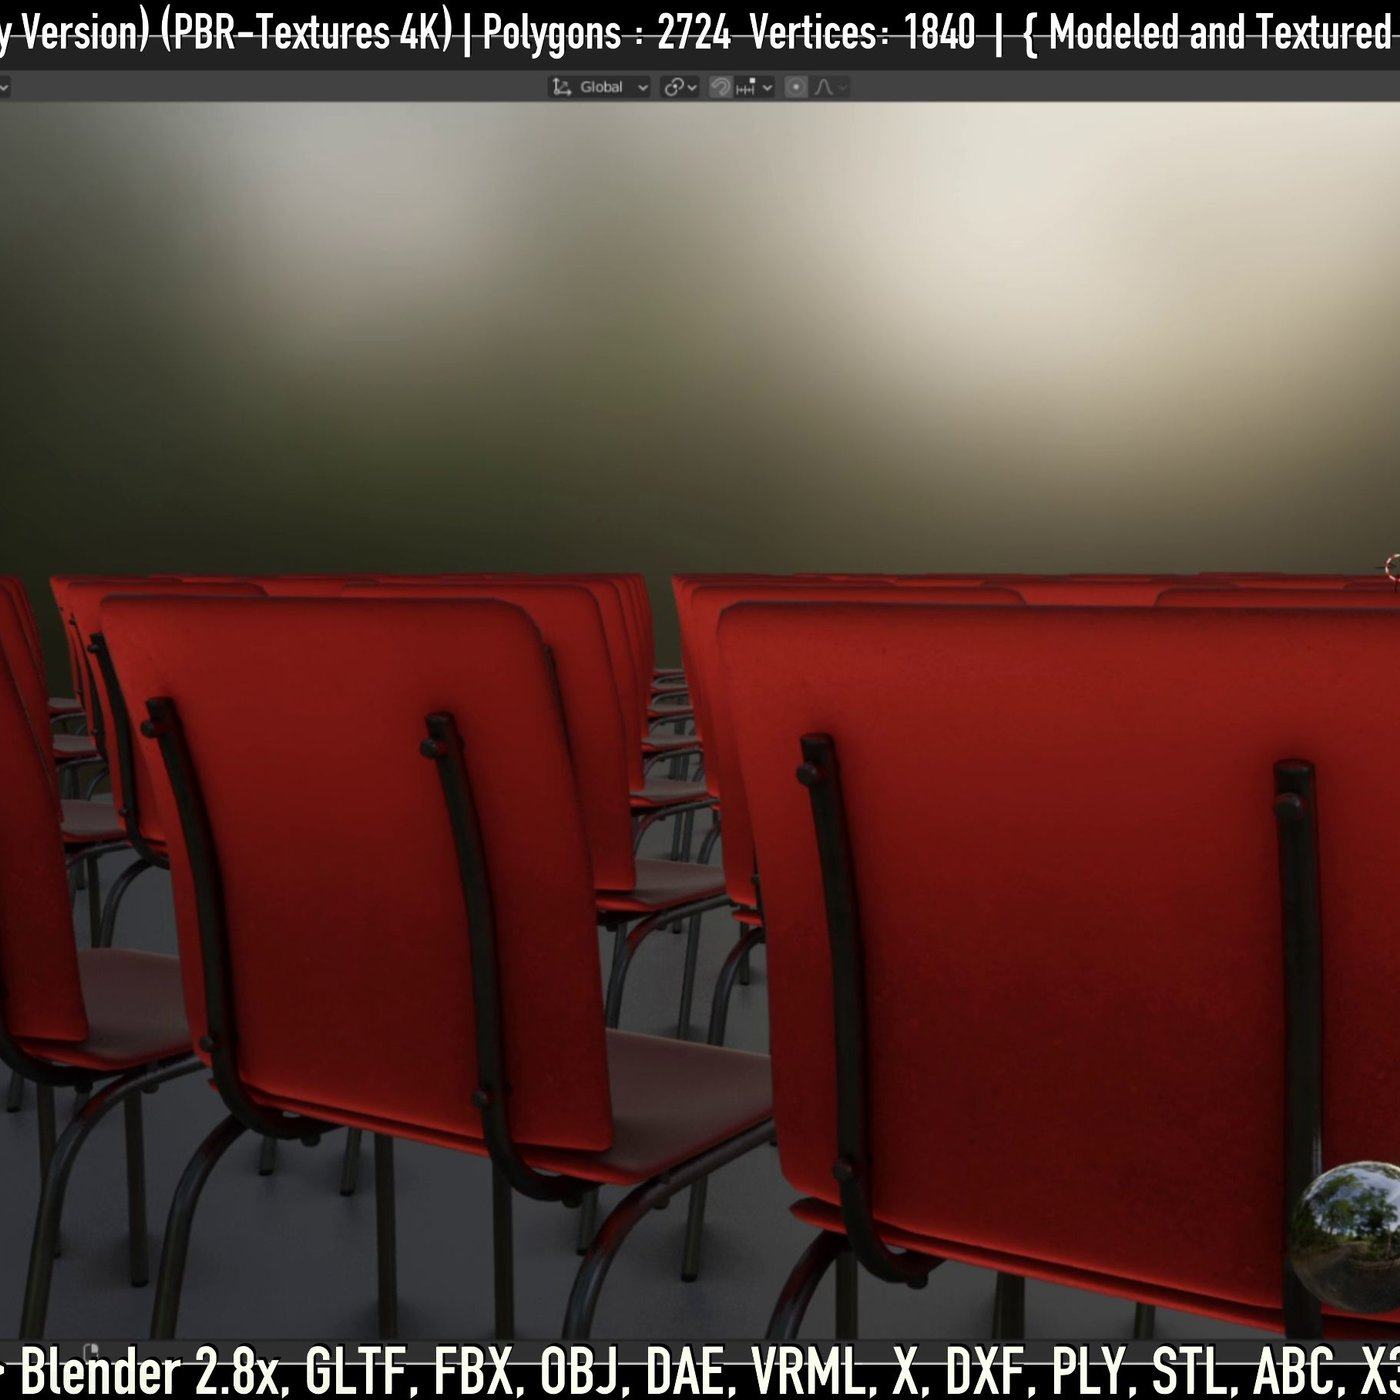 Red Plastic Chair (Low-Poly Version)